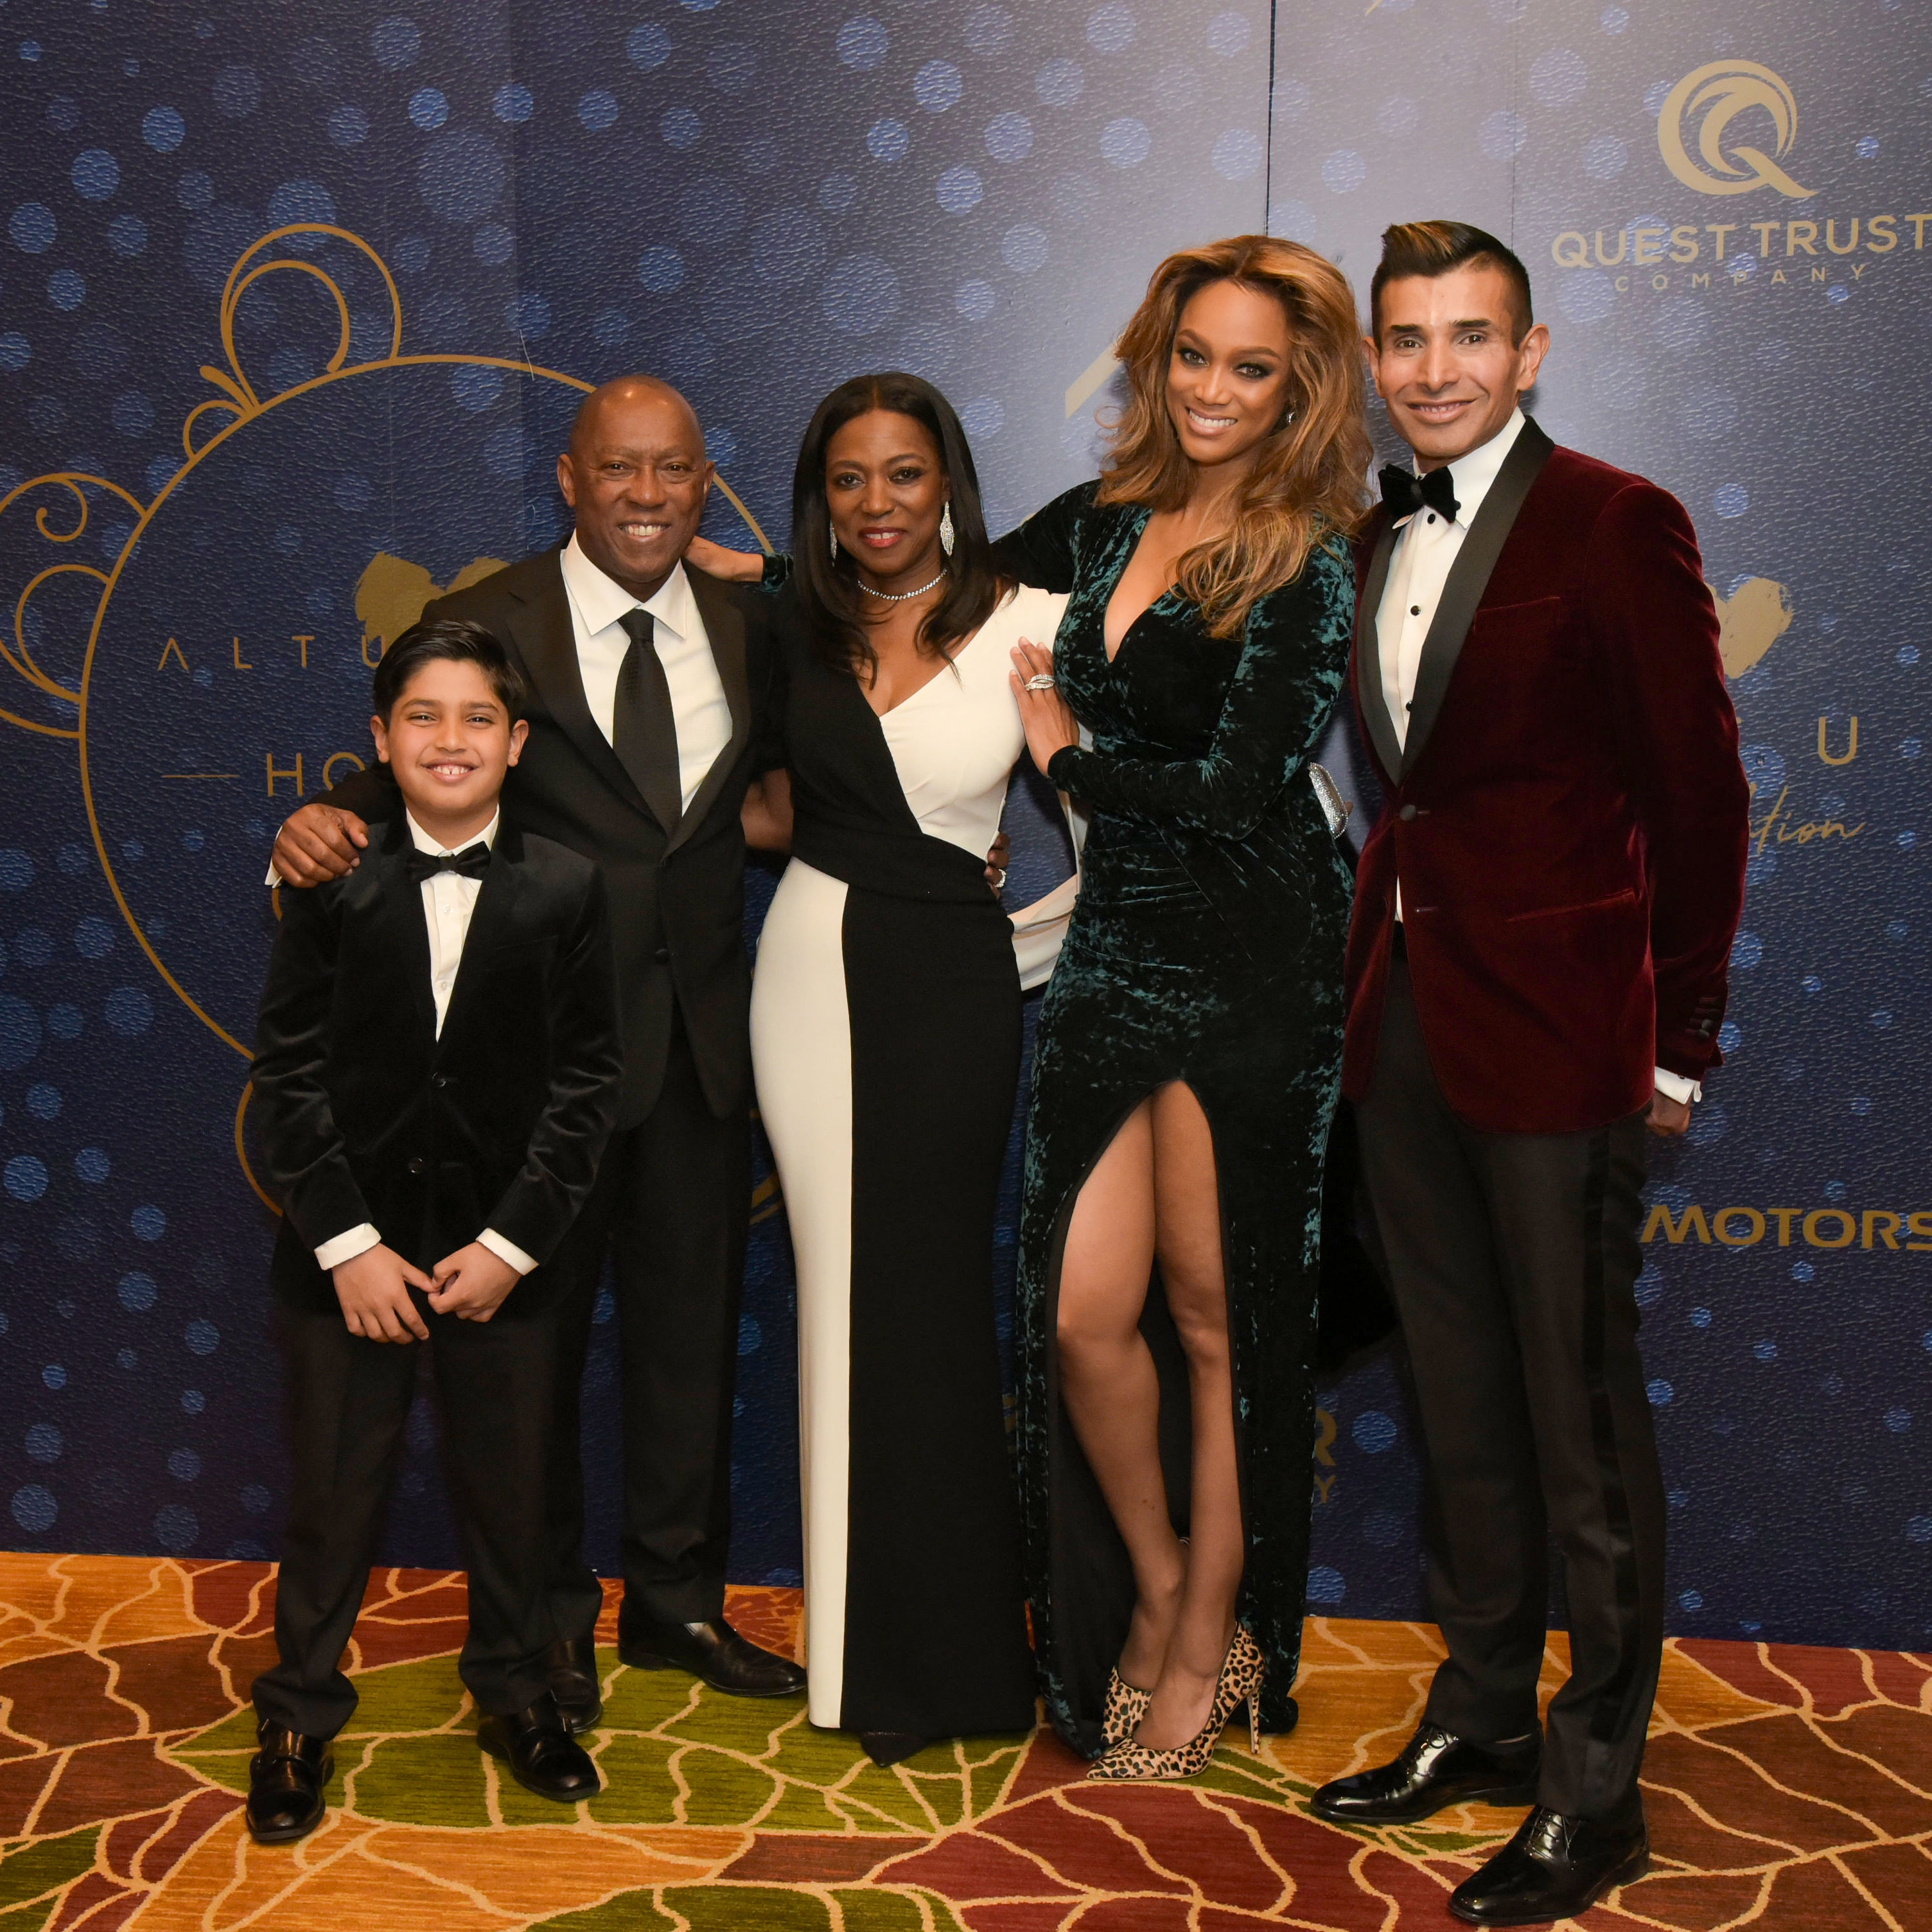 Tyra Banks Family: Charity Events